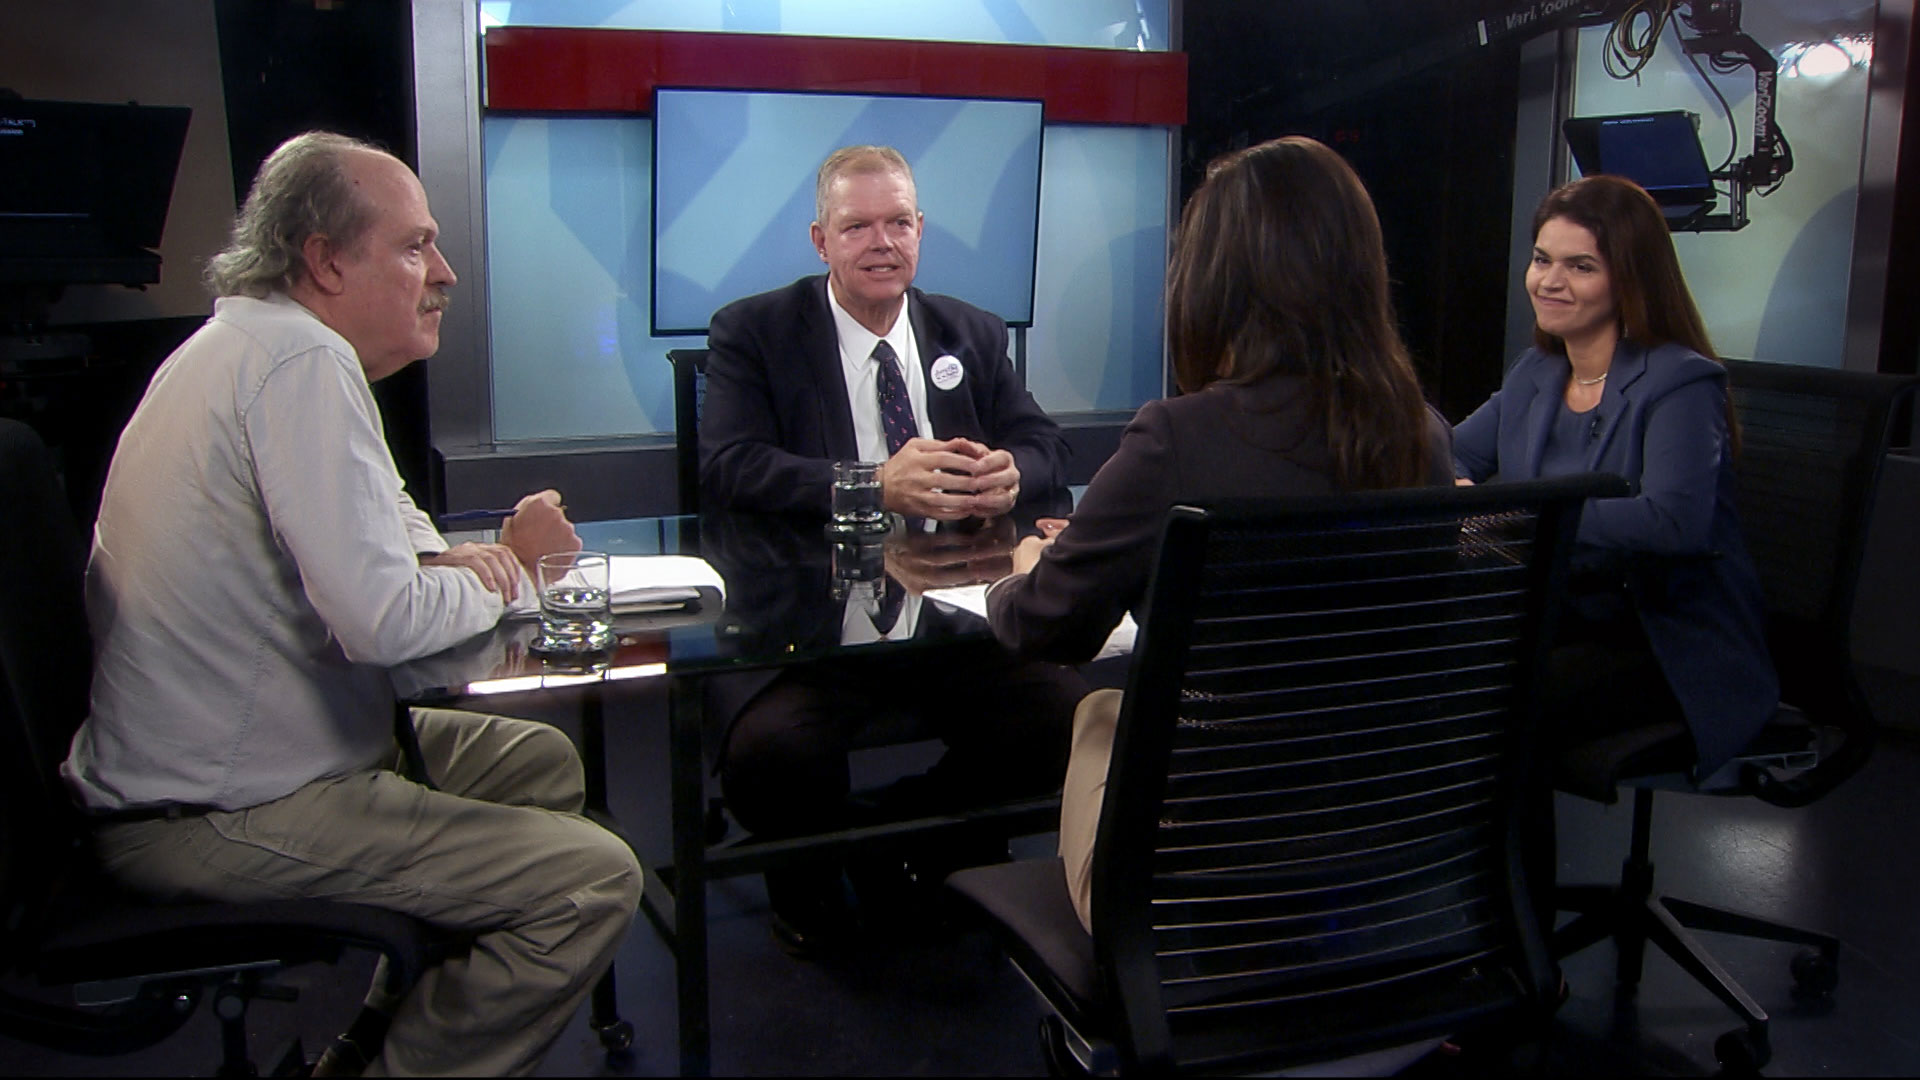 Candidates for mayor of Tucson, Mike Cease (G), Ed Ackerley (I) and Regina Romero (D) sit opposite Arizona 360 host Lorraine Rivera during an interview on October 16, 2019.